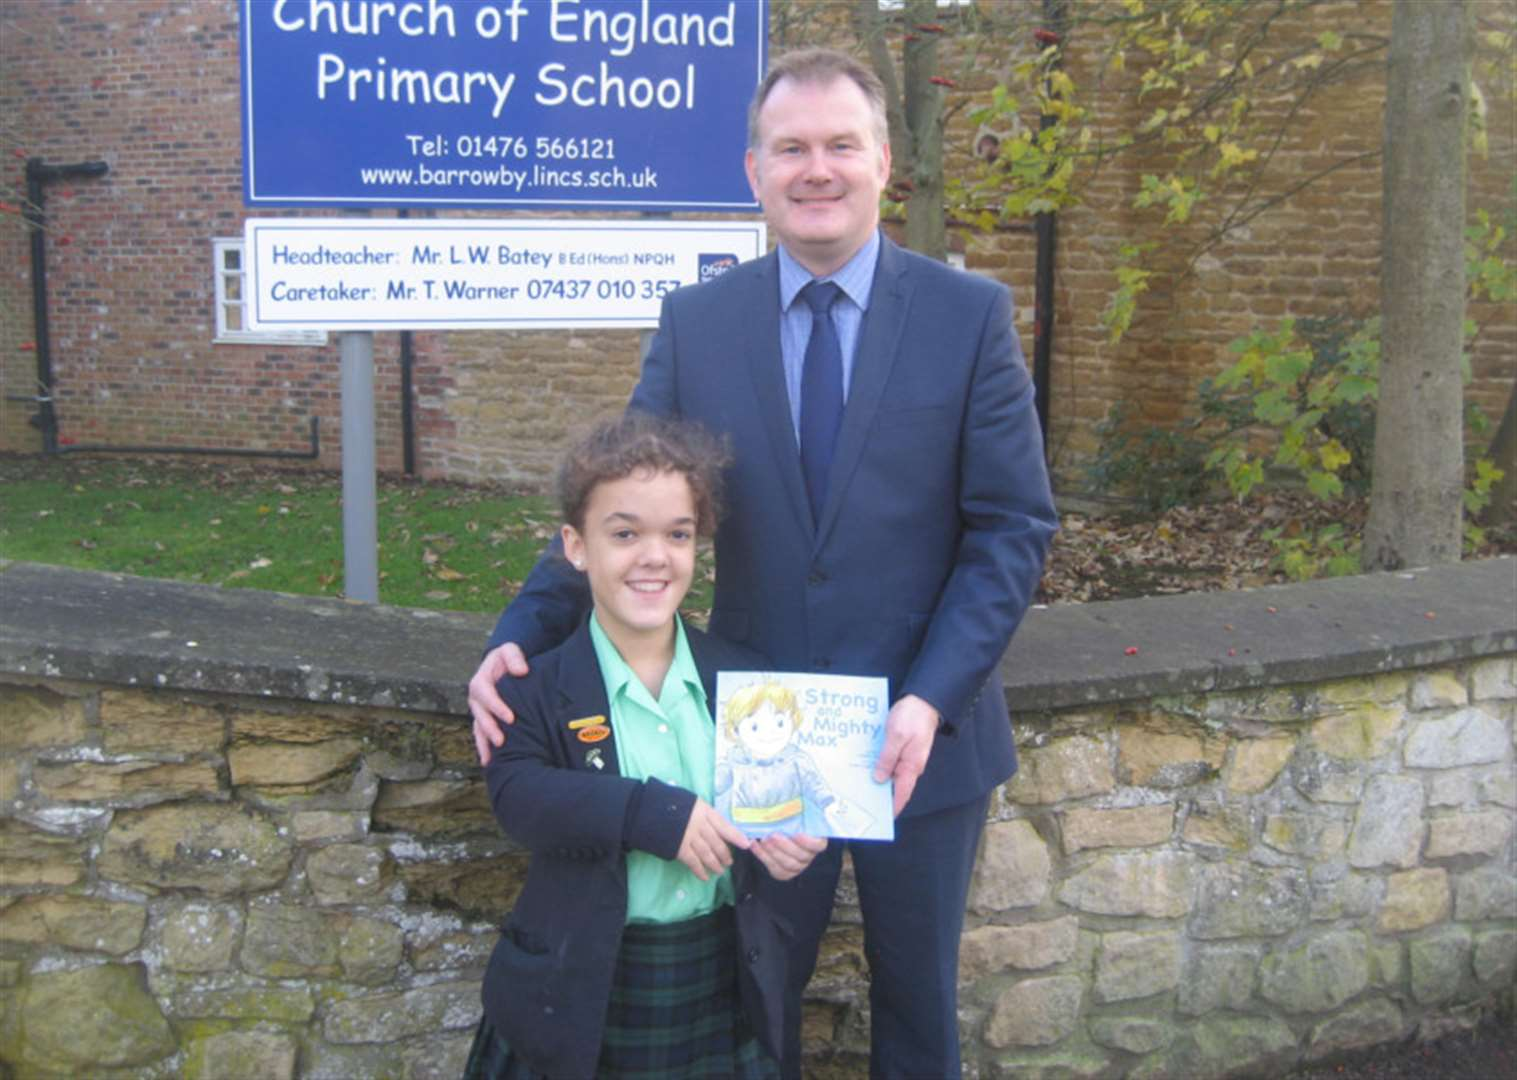 Former Barrowby pupil presents book which encourages children to celebrate being unique